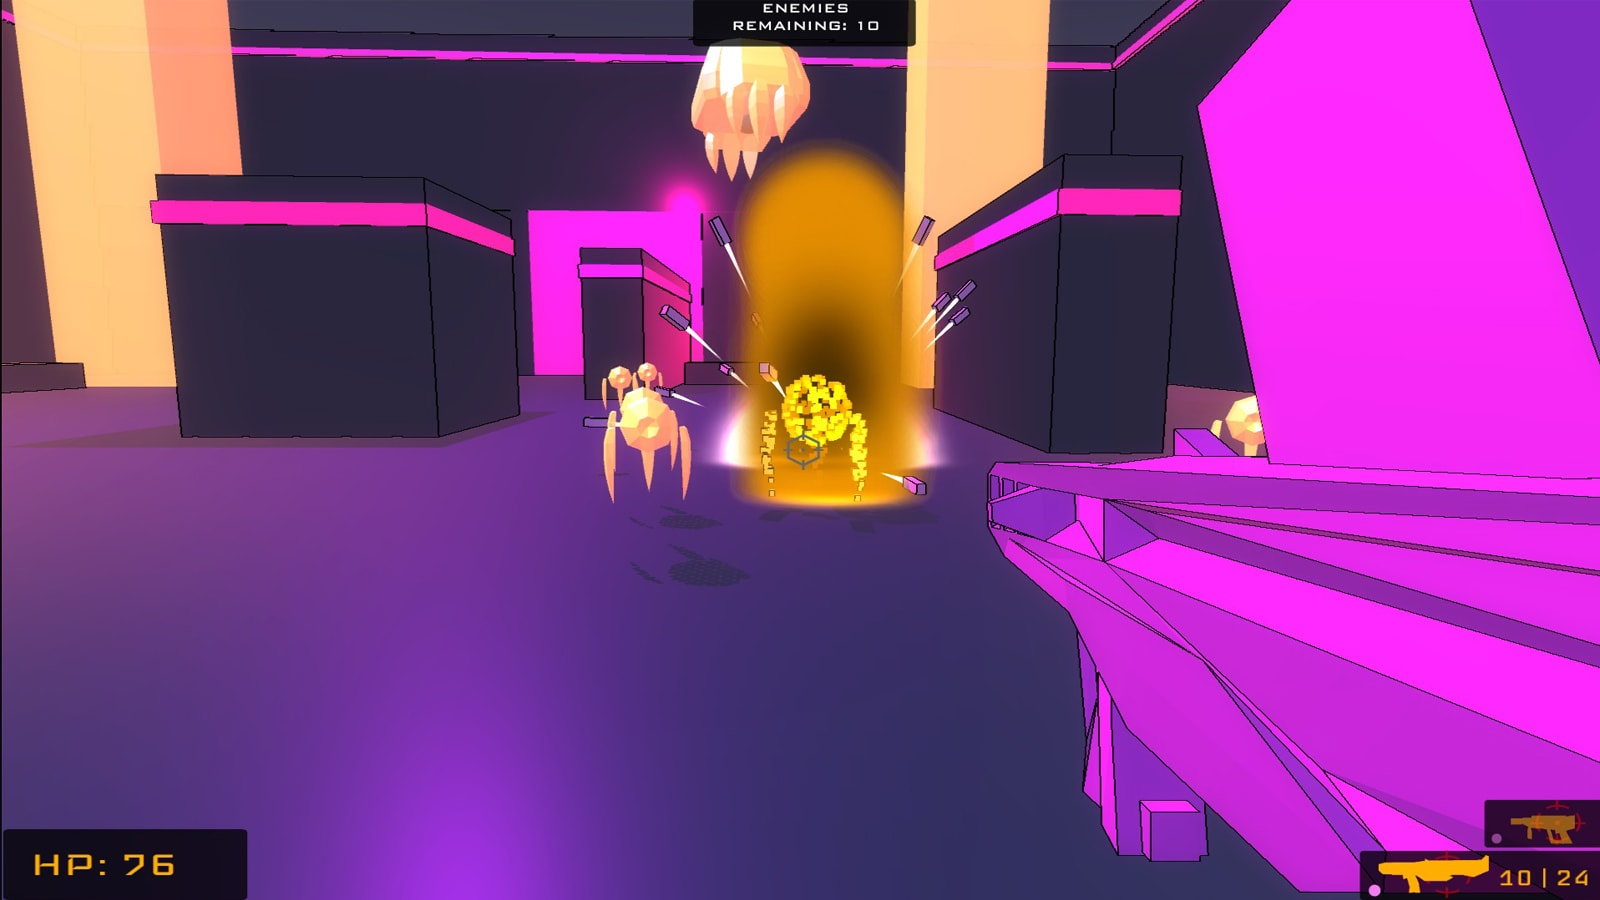 The player shoots a purple burst at an anti-virus, disintegrating it into small particles.